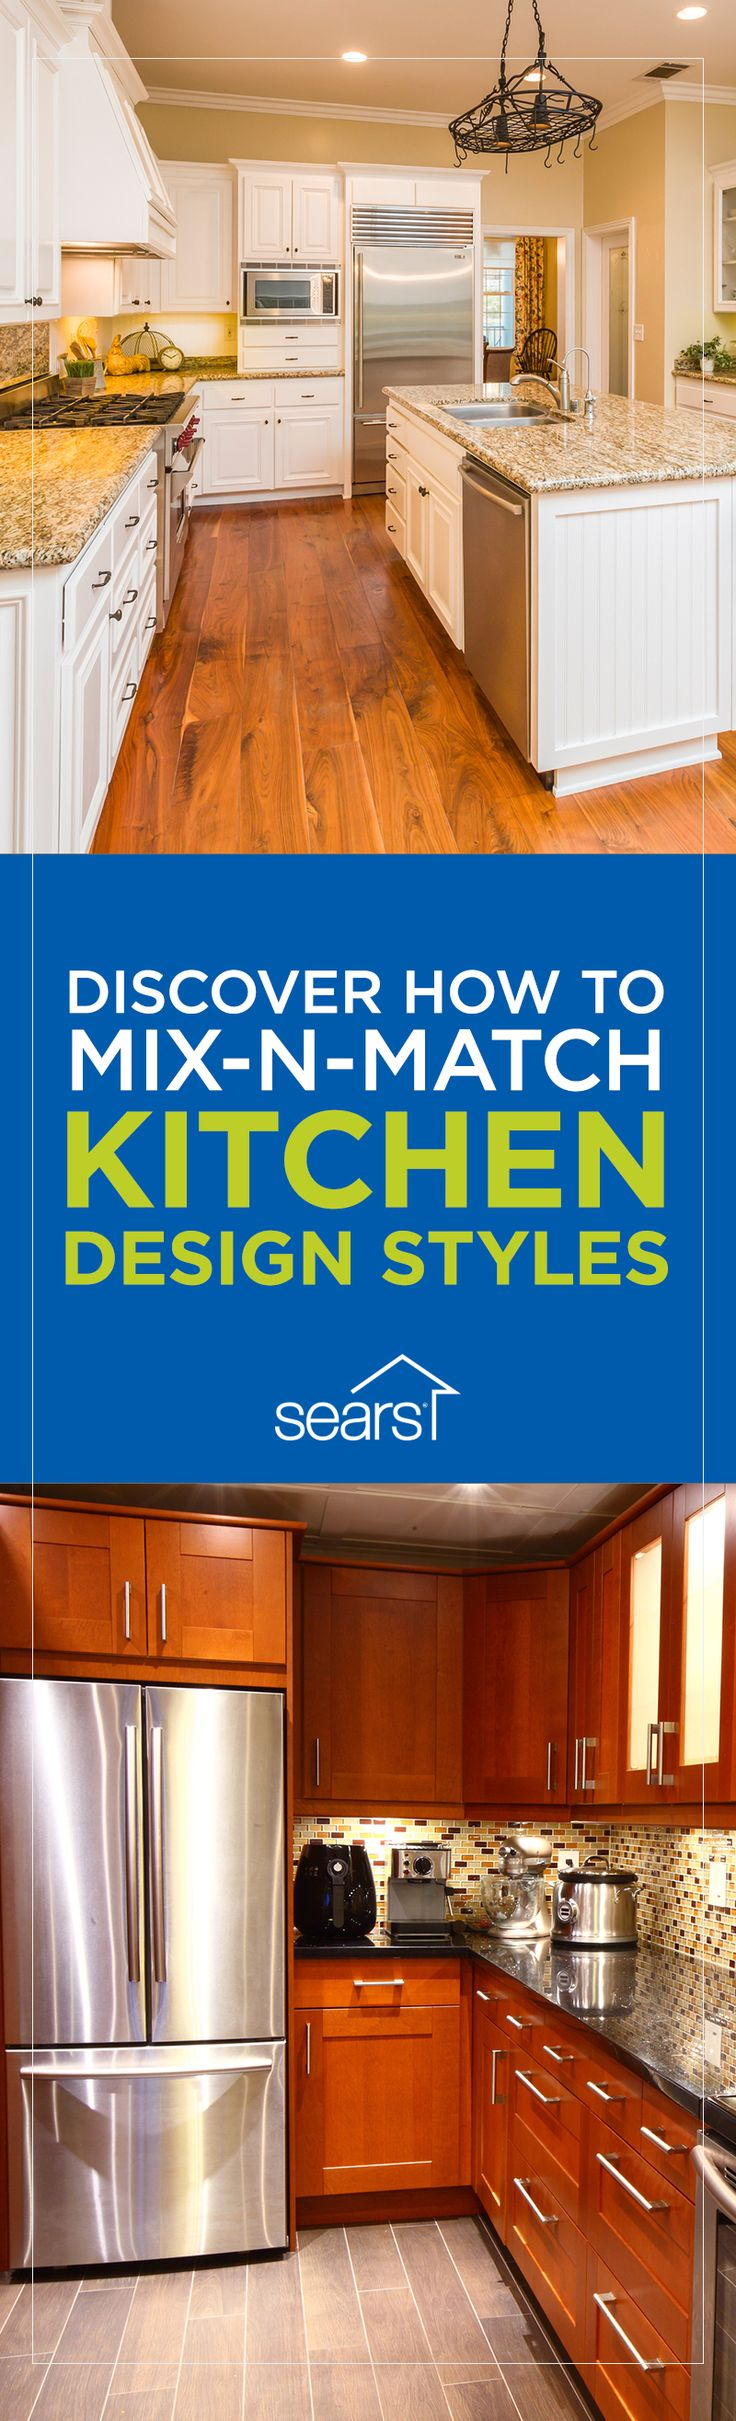 How to Blend Kitchen Design Styles: Can't decide between a modern or traditional kitchen? Not only is it OK to mix styles, it's actually a major trend right now. You can update some elements by refacing the cabinets or adding new counters or a backsplash to infuse your kitchen with a fresh look. Merge modern with country? How to design a transitional kitchen? Check out the Sears Home Services blog for tips to help you create the perfectly balanced space that meets all of your needs.